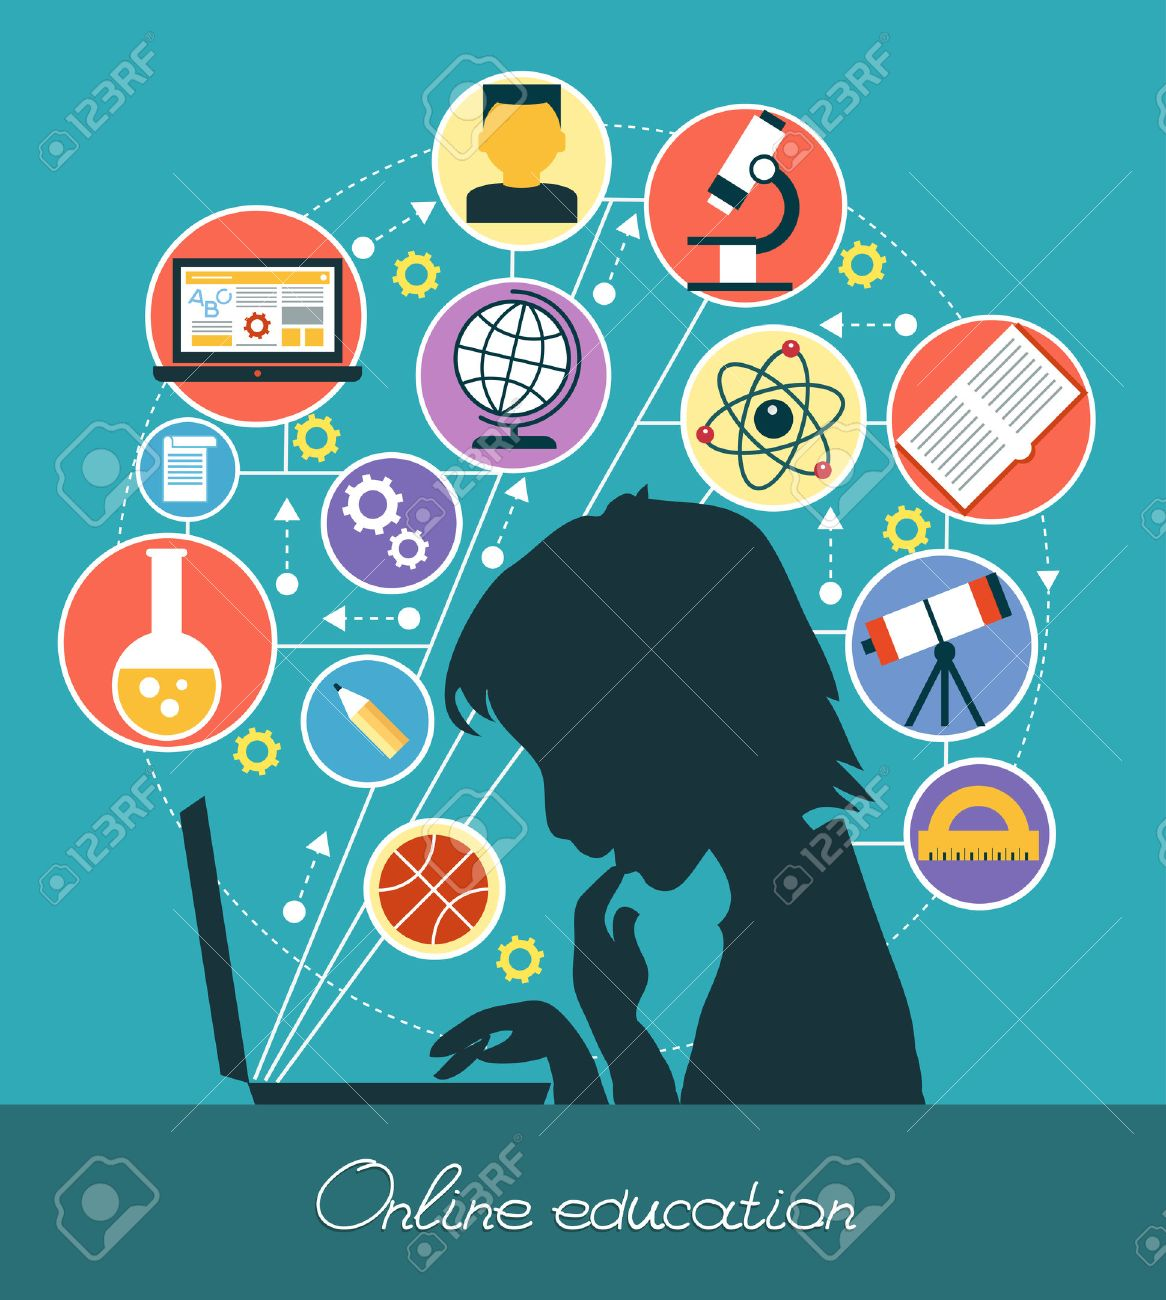 Icons education. Silhouette of a boy surrounded by icons of education. Concept online education. - 45835359